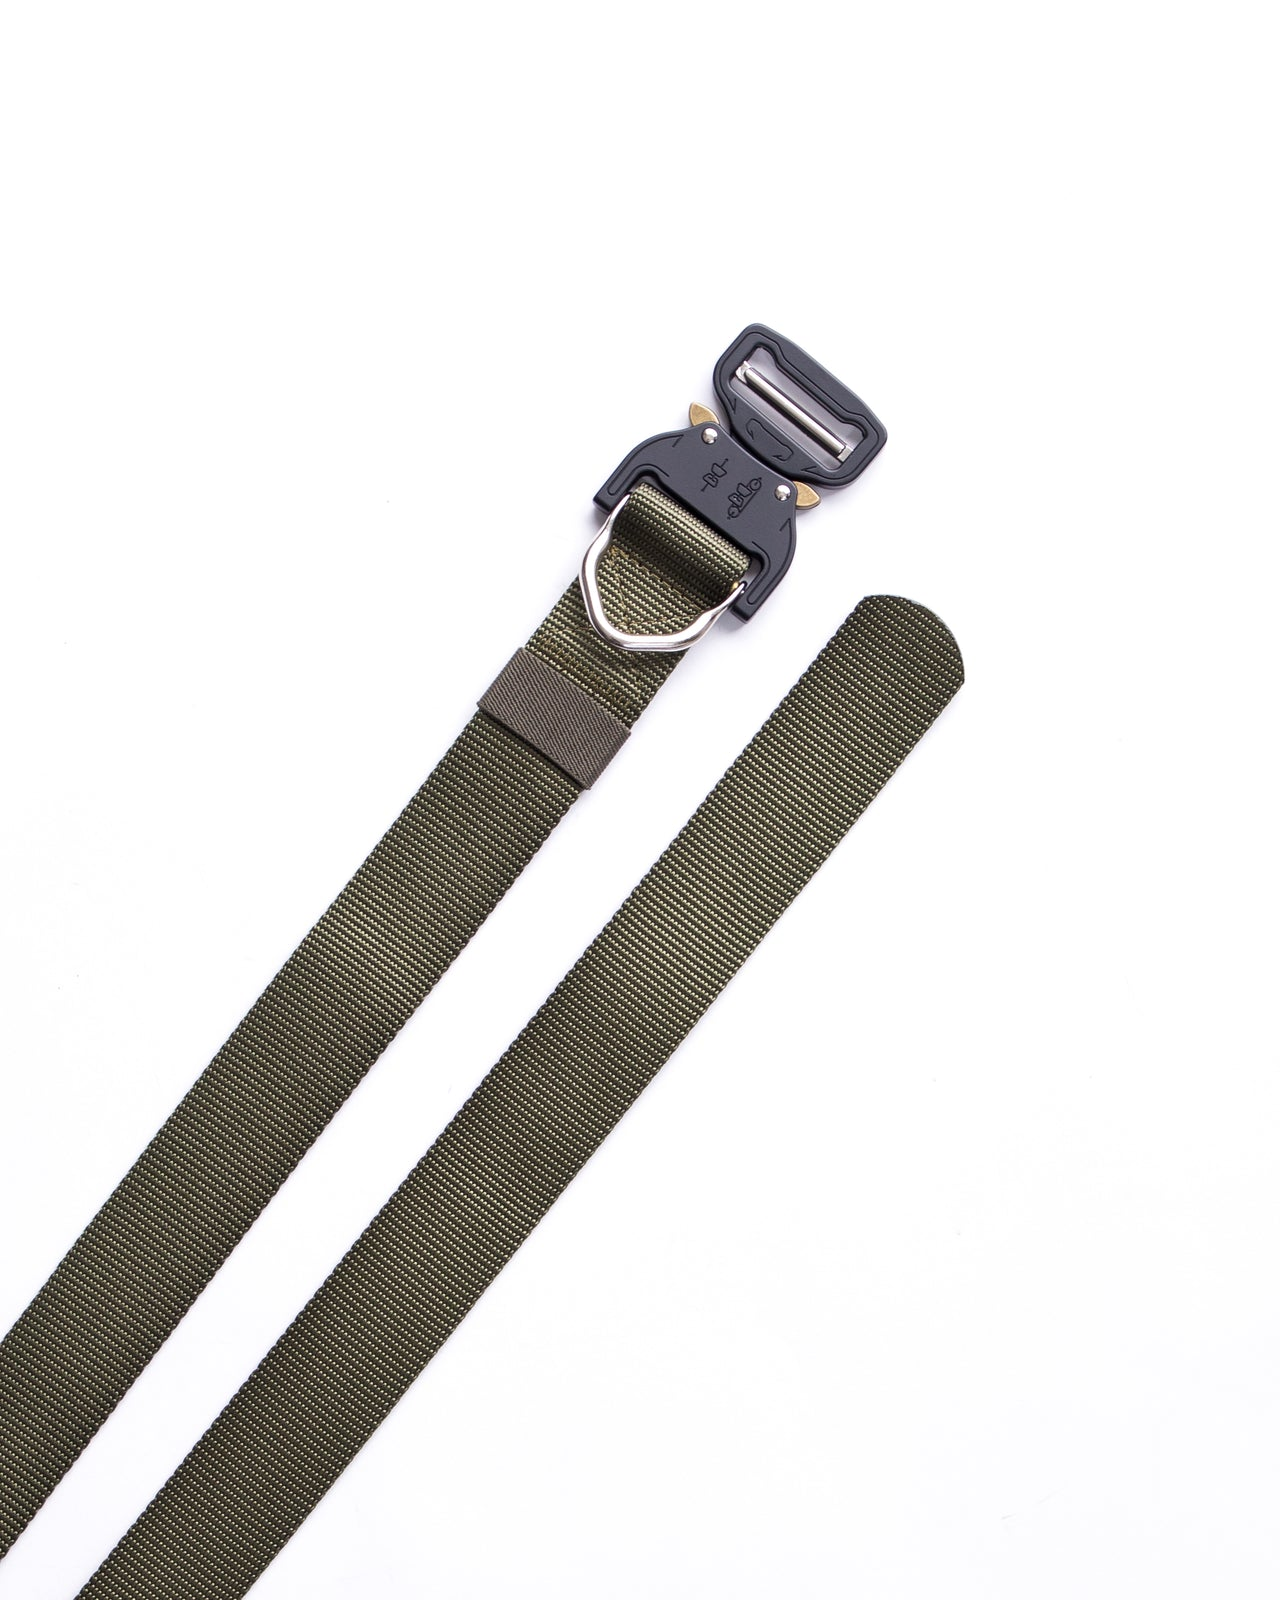 Utility Belt - Color: Olive | Green